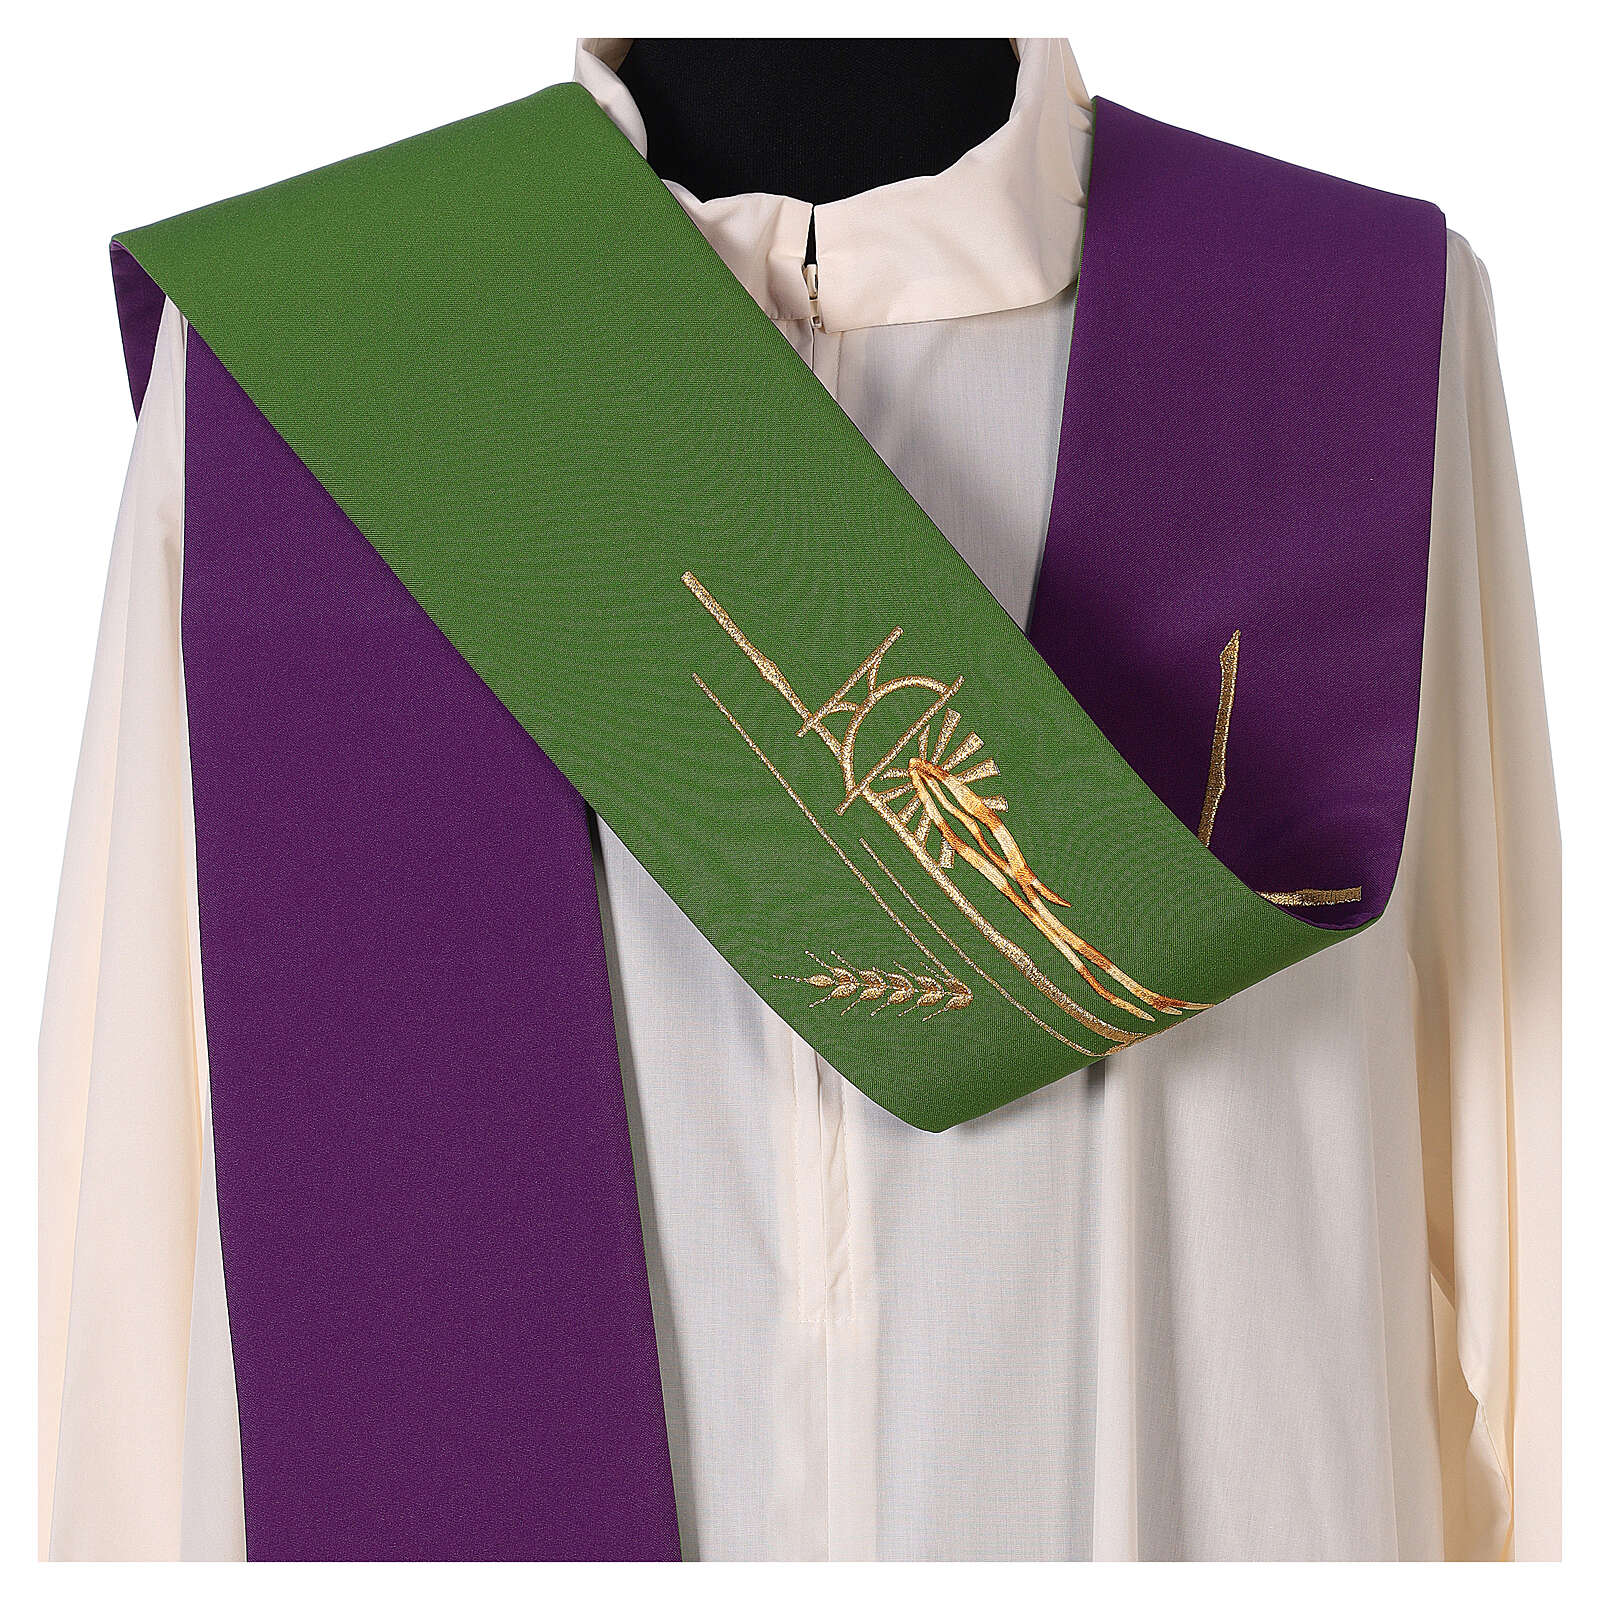 Liturgical tristole wheat two-colored purple and green 100% polyester 4